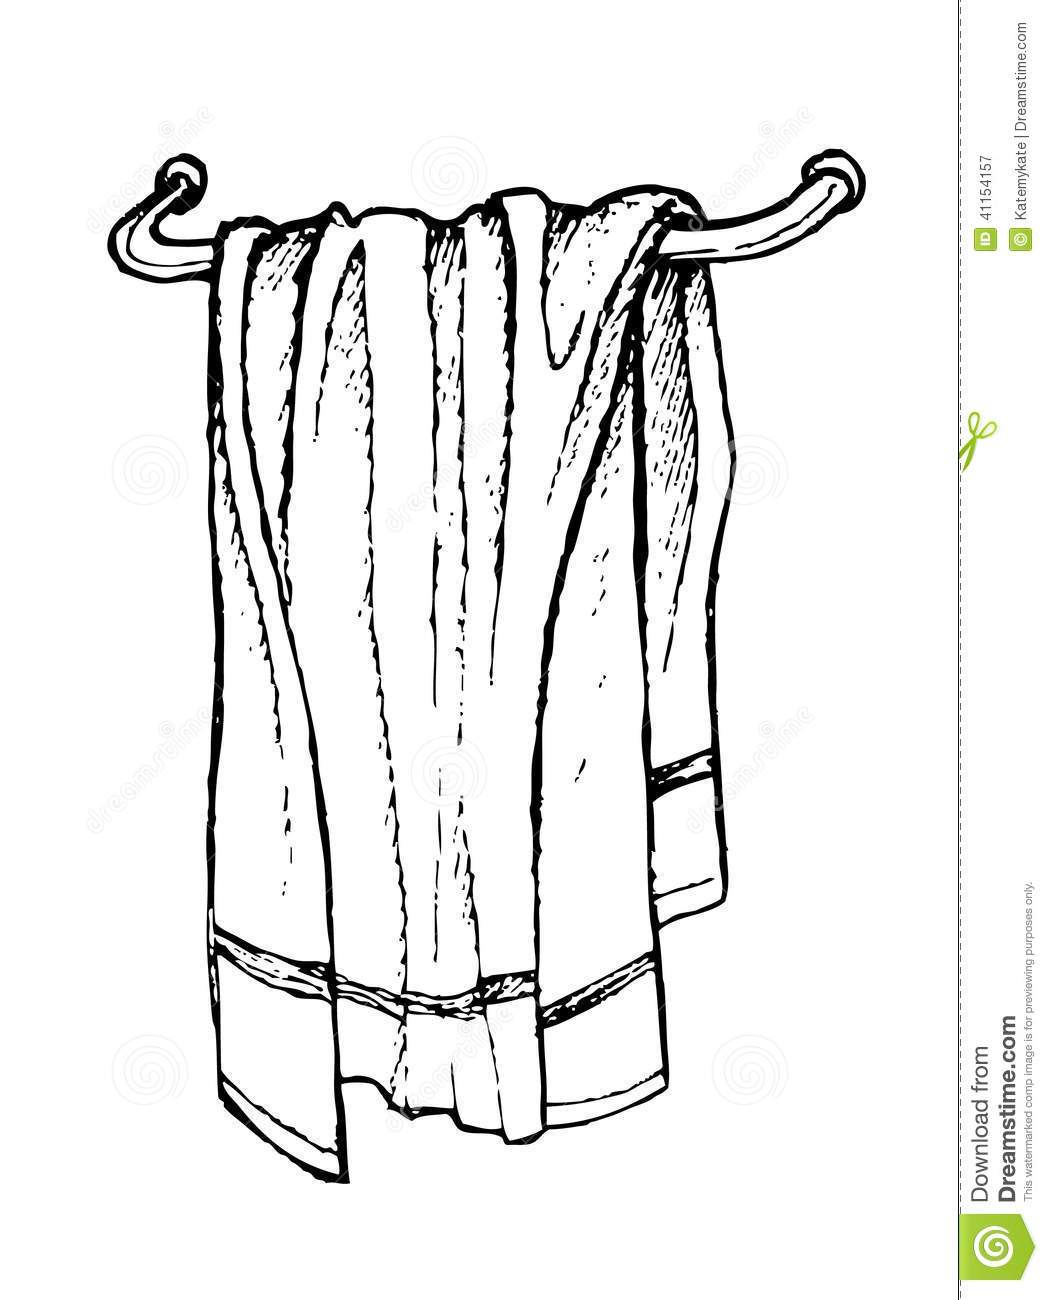 Towel clipart black and white 3 » Clipart Portal.